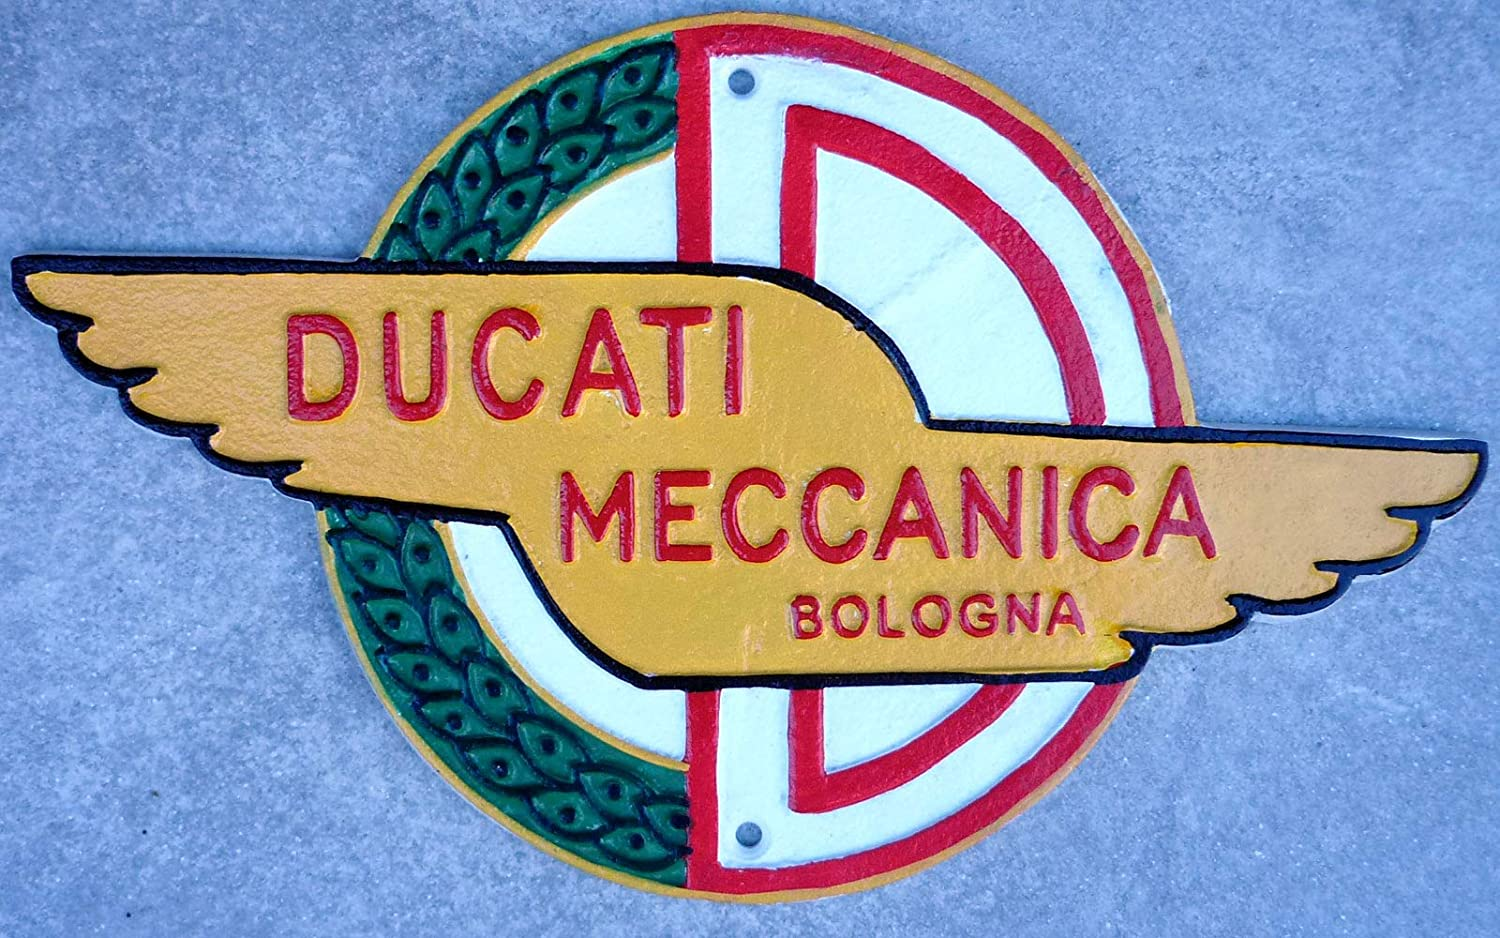 Ducati Motorcycle Sign Logo Badge Cast Iron Vintage Style Finish Hand Painted Garage Wall Plaque 30cm Italian Superbike MotoGP Man Cave Workshop CastIronSigns